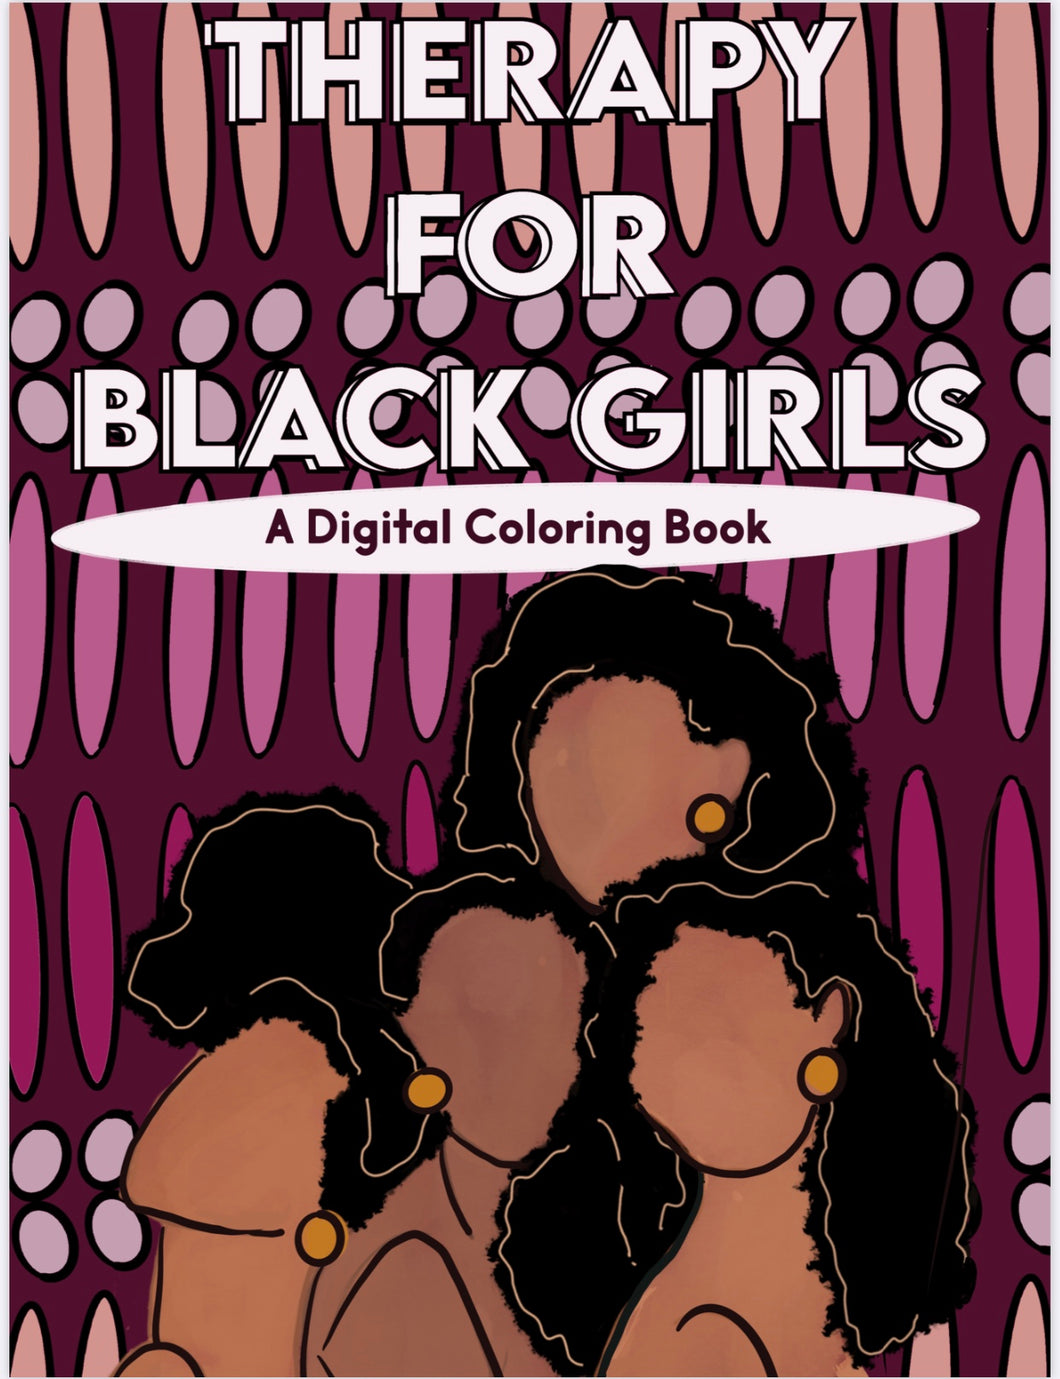 Therapy for Black Girls Digital Coloring Book